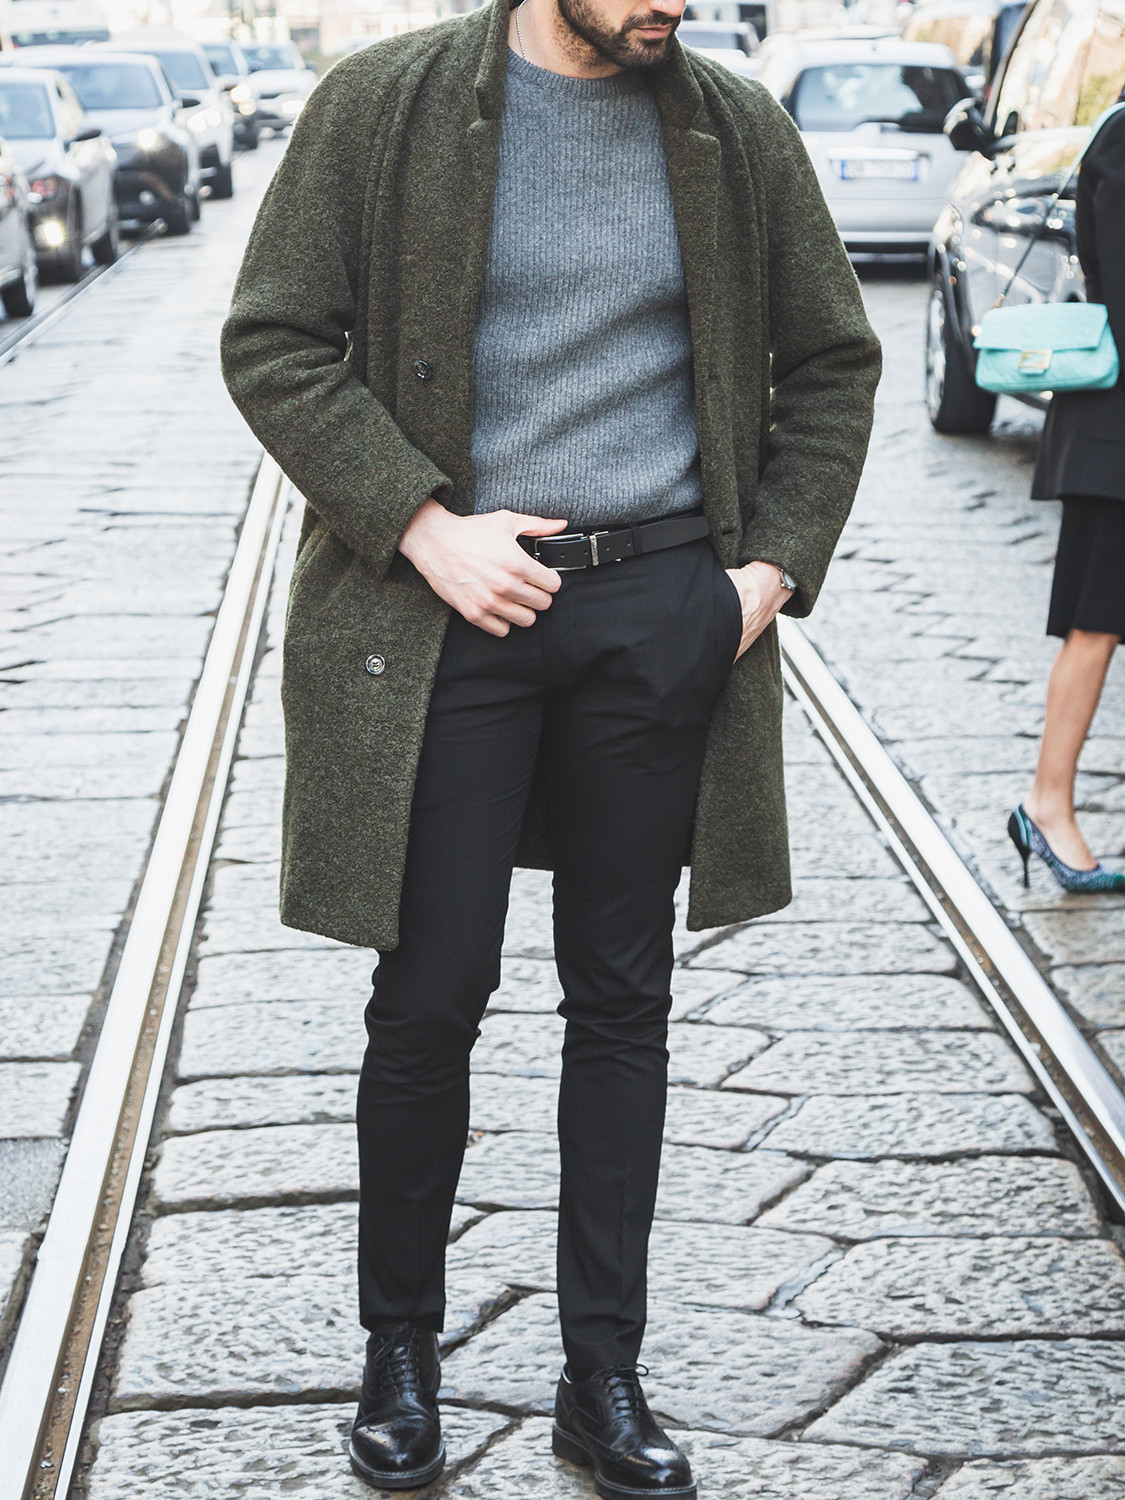 Men's outfit idea for 2021 with green single-breasted overcoat, grey plain crew neck knitted jumper, black formal trousers, black brogues. Suitable for autumn and winter.